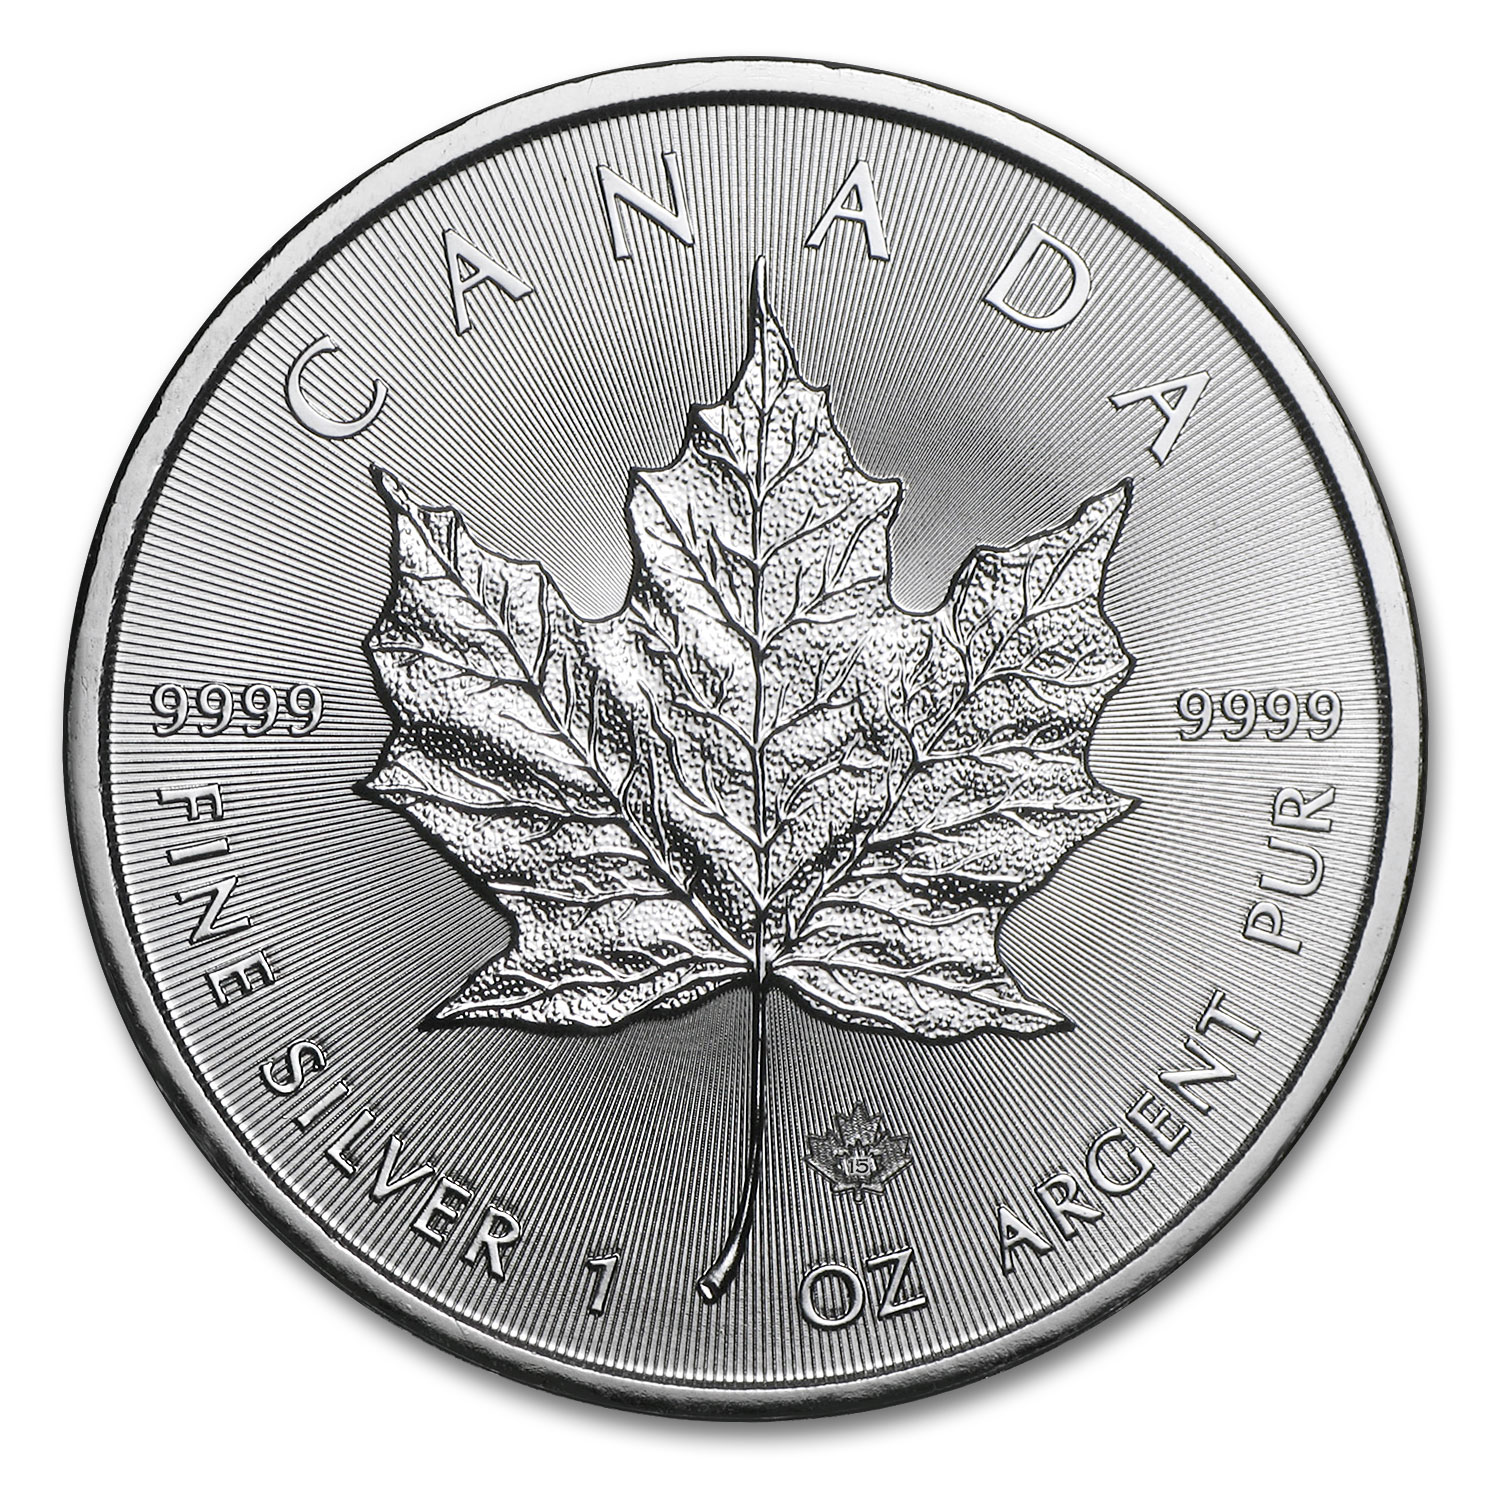 2015 Canada 1 oz Silver Maple Leaf BU (Dec 17th)